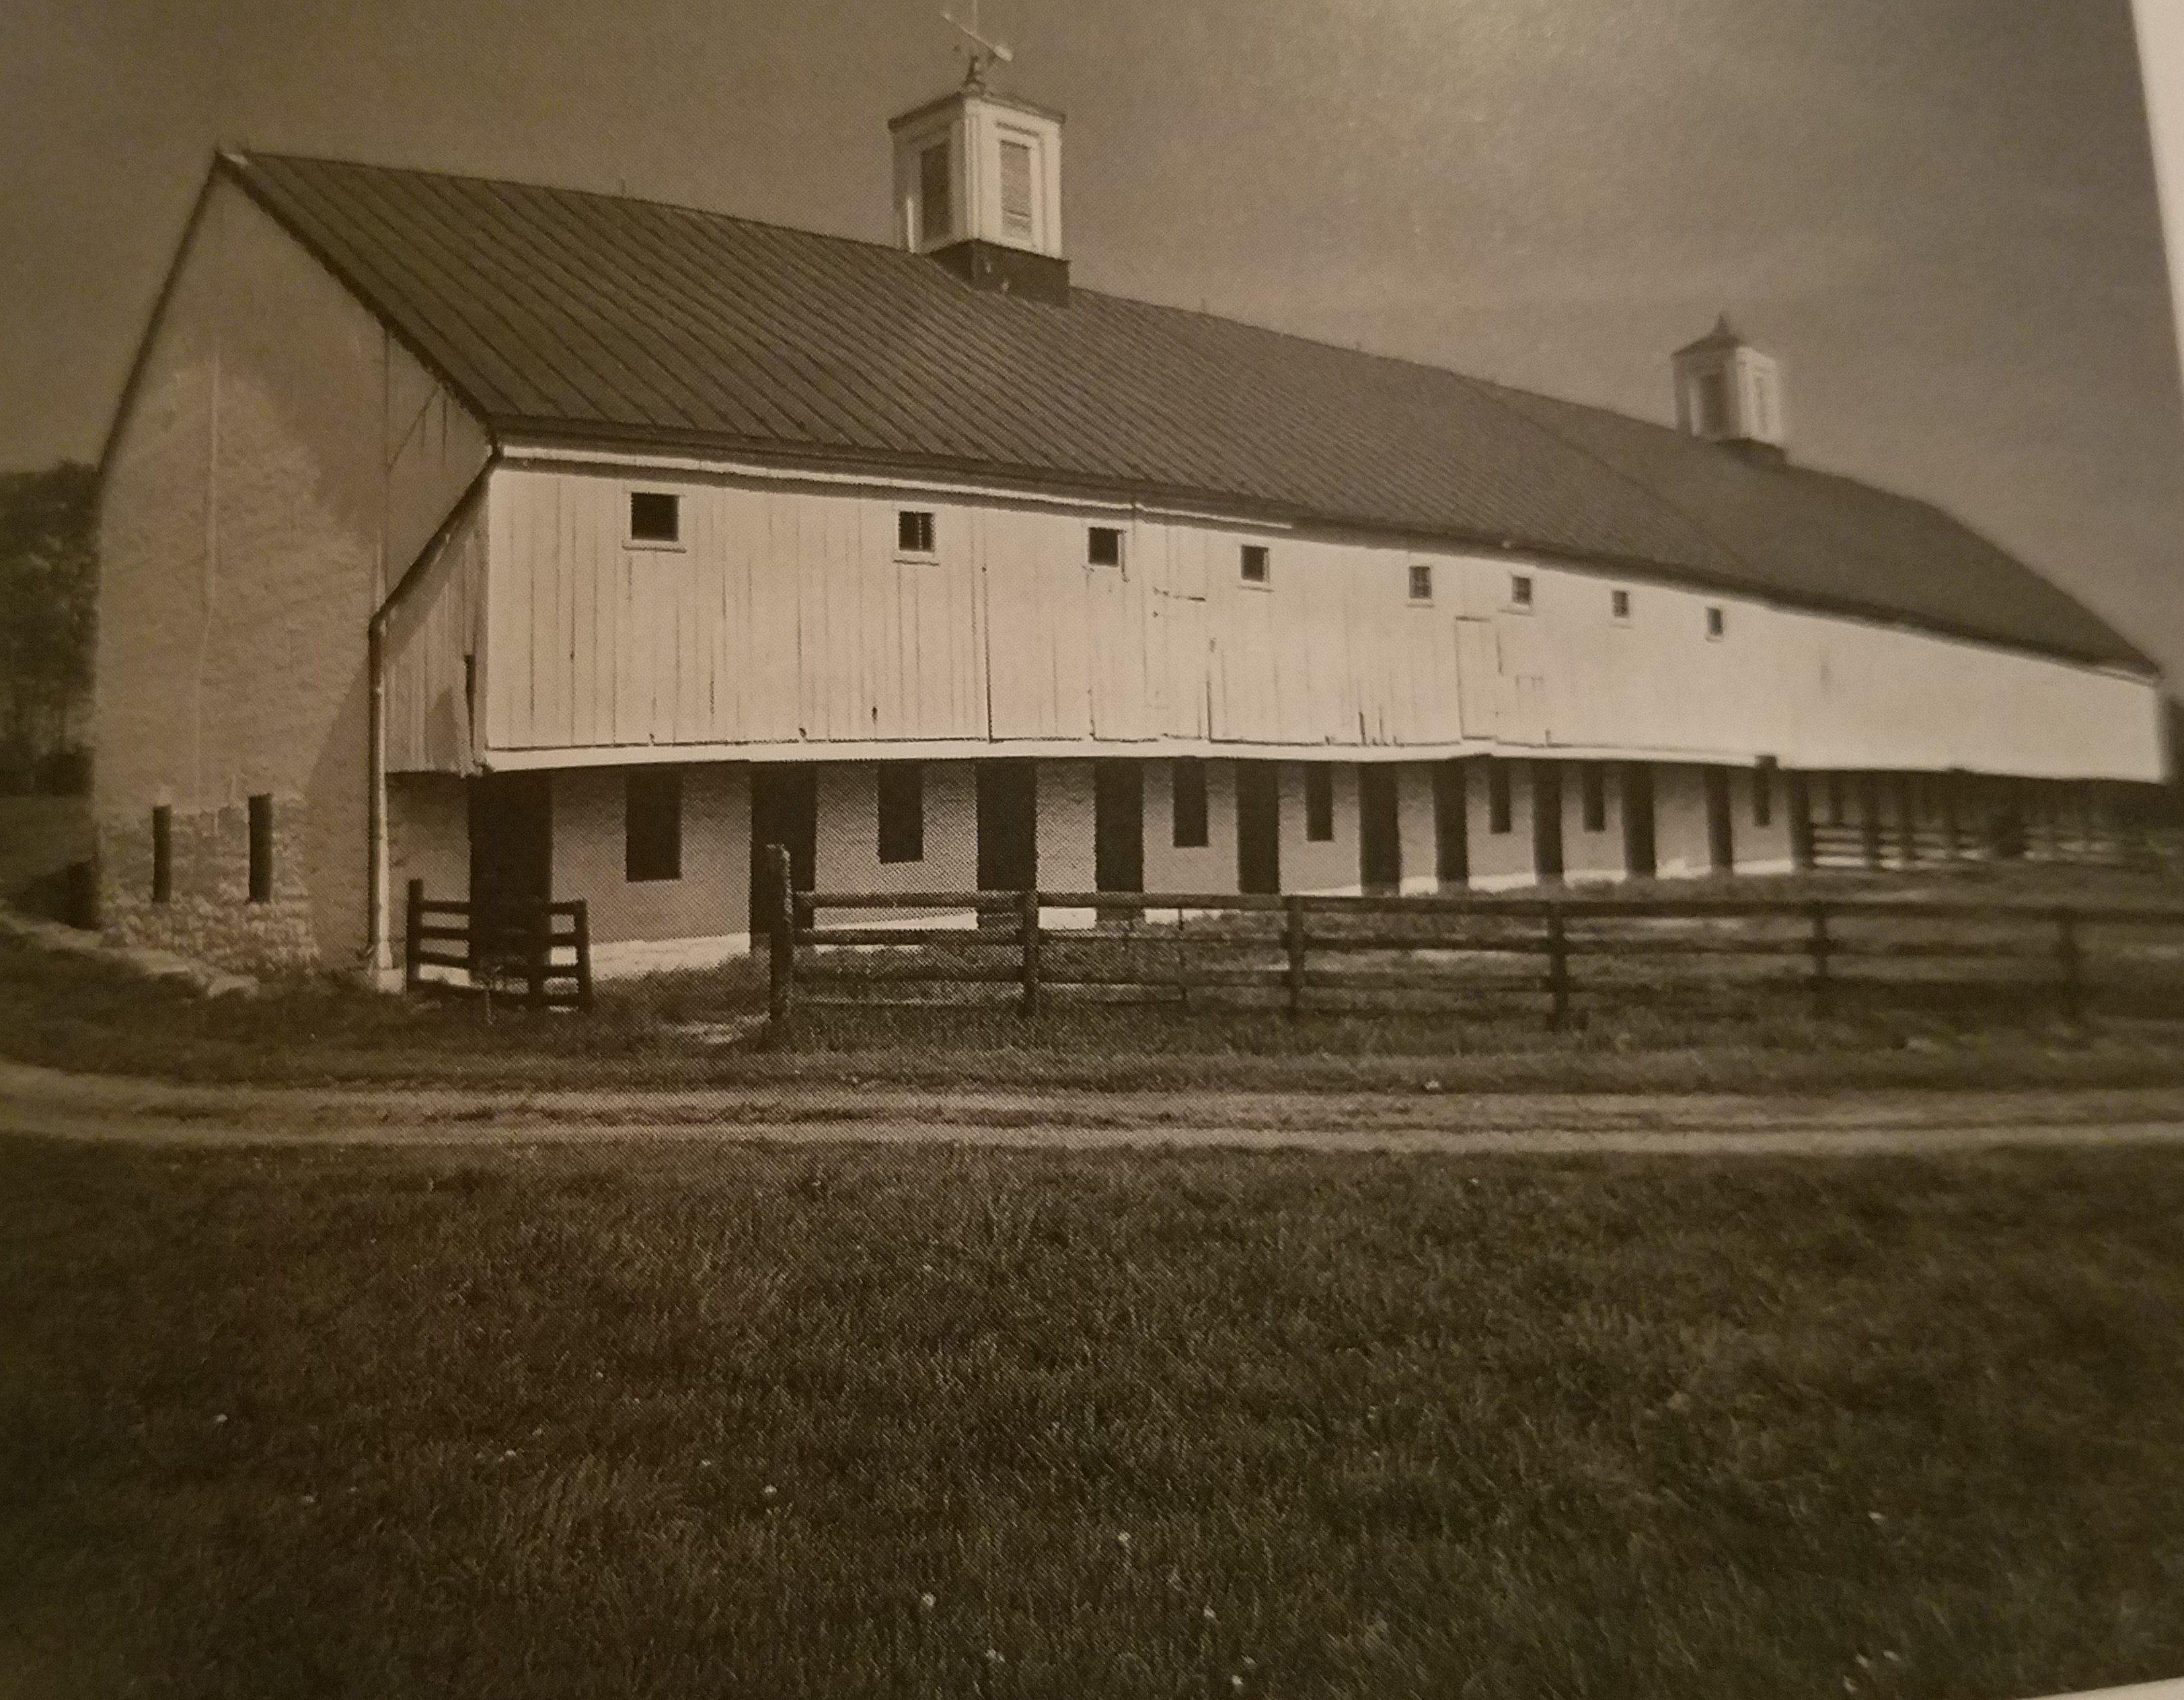 The Bank Barn was constructed in 1850 and remains in good condition still providing for the farms agricultural needs.